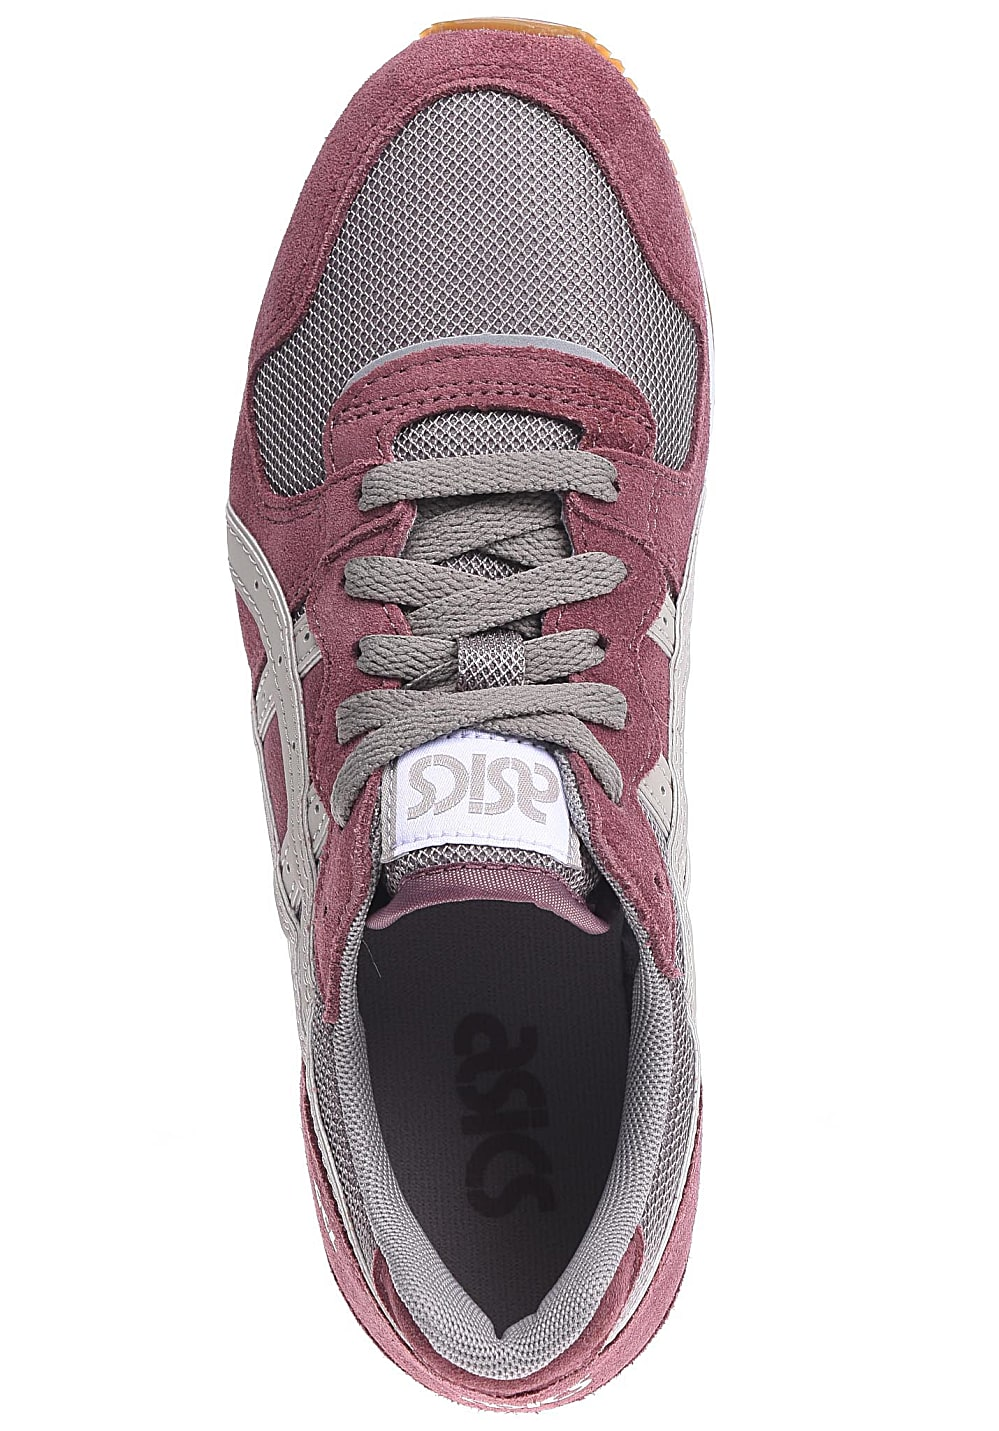 ASICS Tiger Gel-Movimentum - Sneaker für Damen - Rot